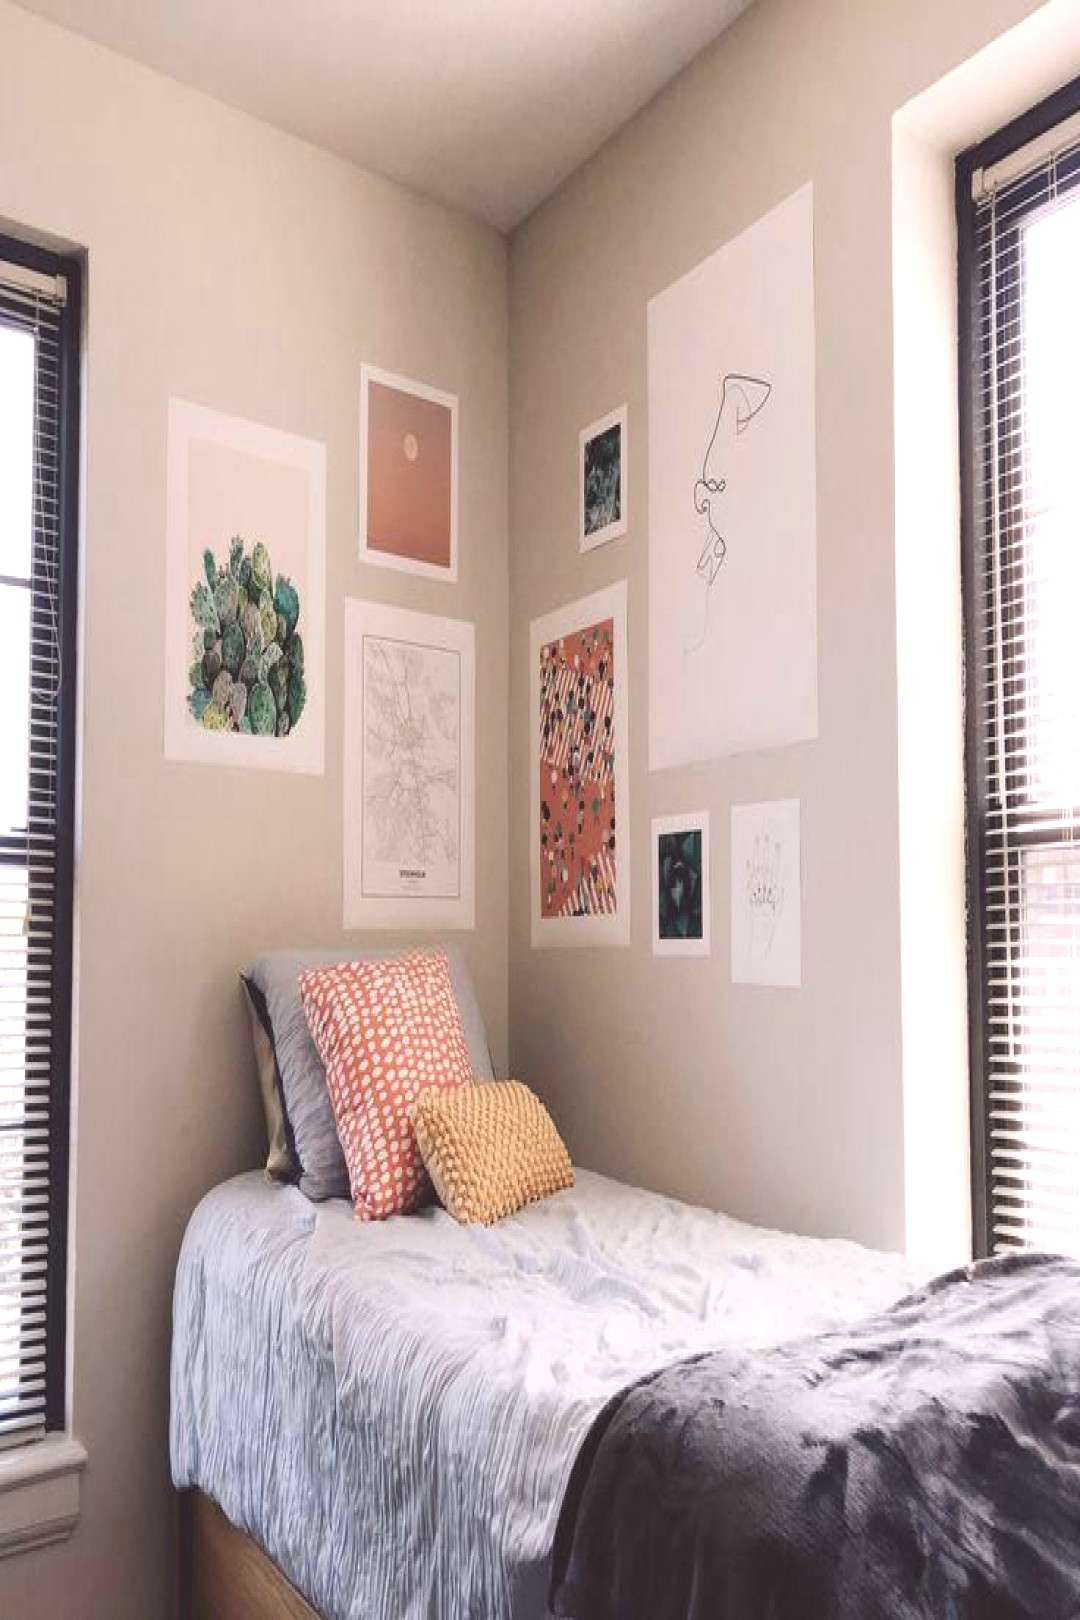 Dorm room at the University of Pittsburgh | Dorm Room Wall Decor | Dorm Room Wall Decor | Dor...#de